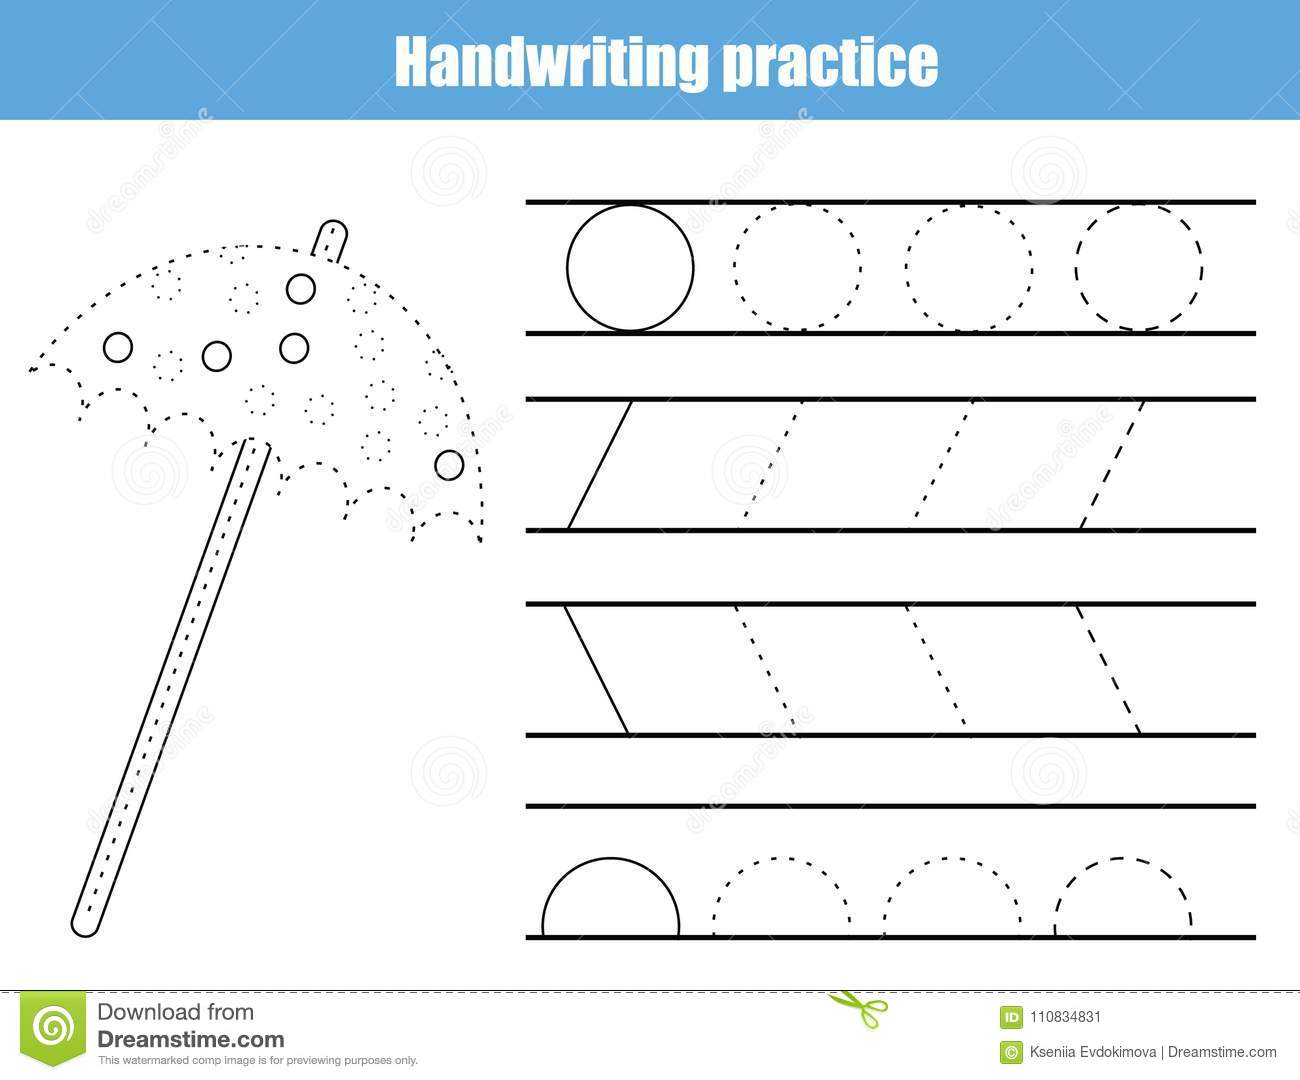 Blank Handwriting Practice Worksheet